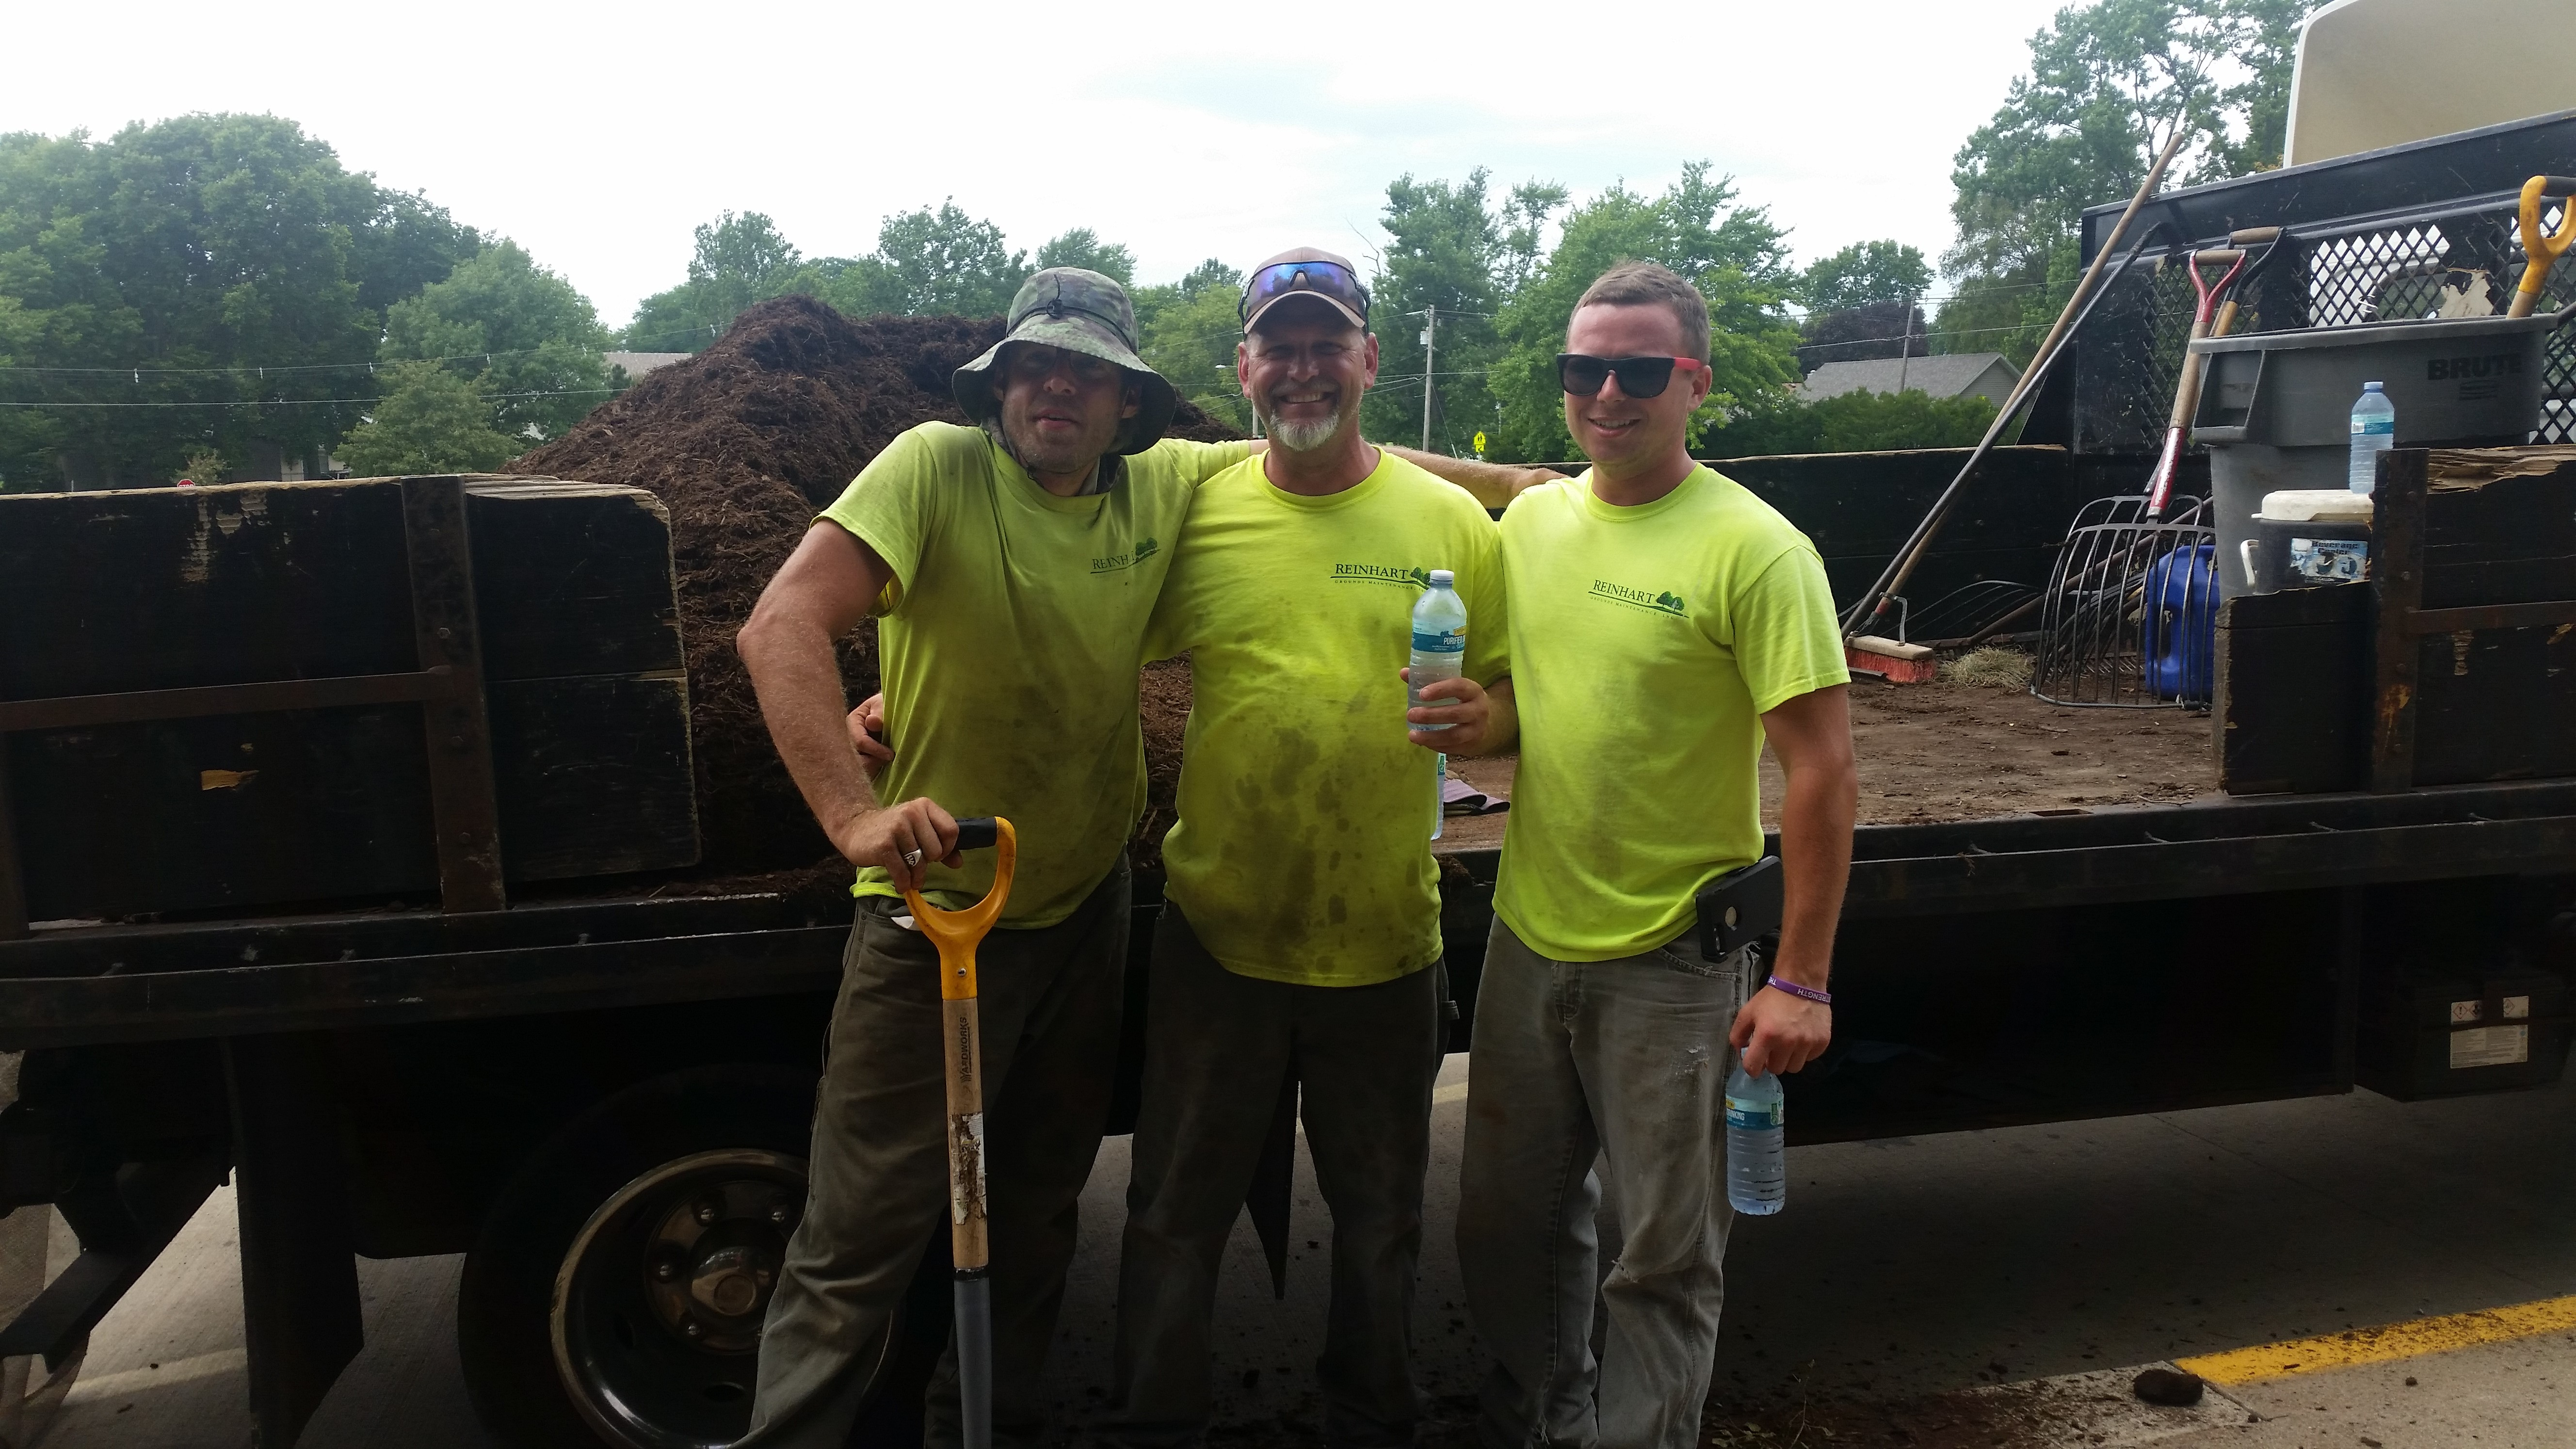 These guys were working at Bloomington middle school